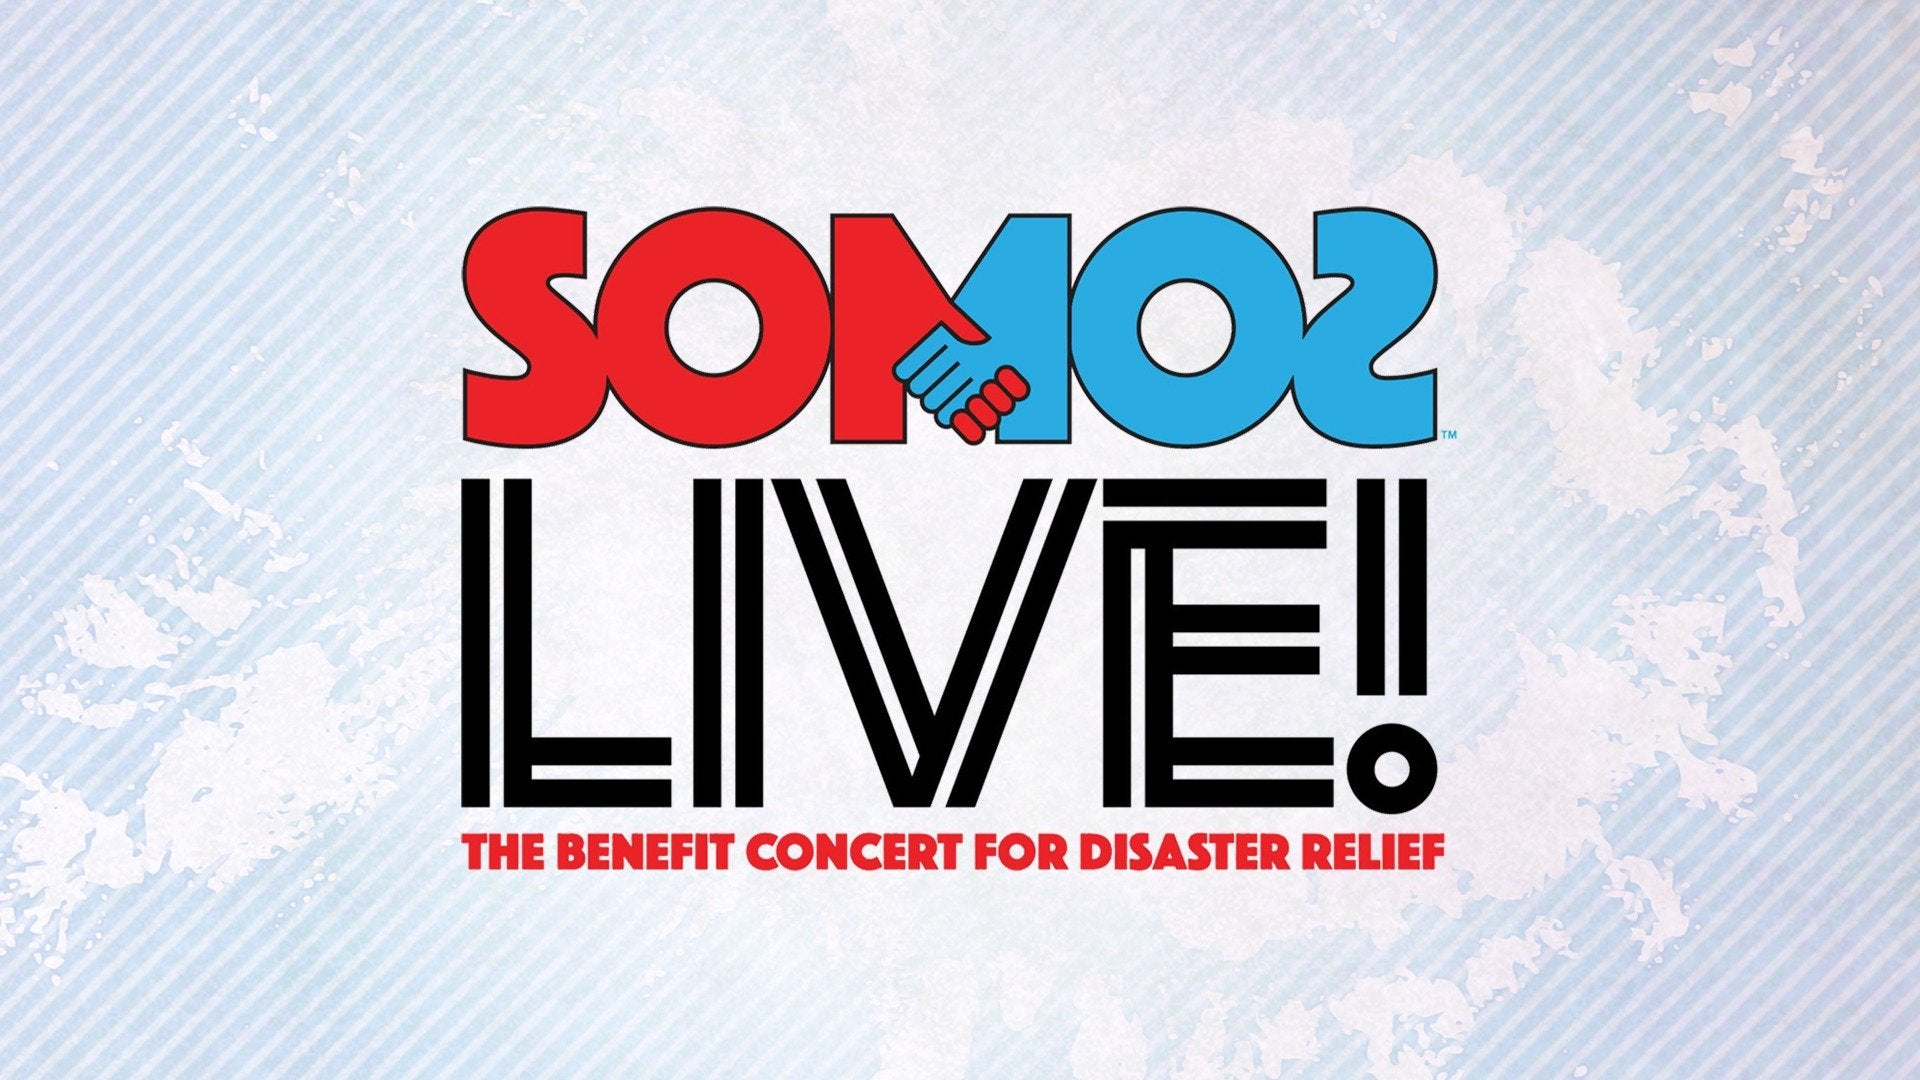 Somos Live! The Benefit Concert for Disaster Relief